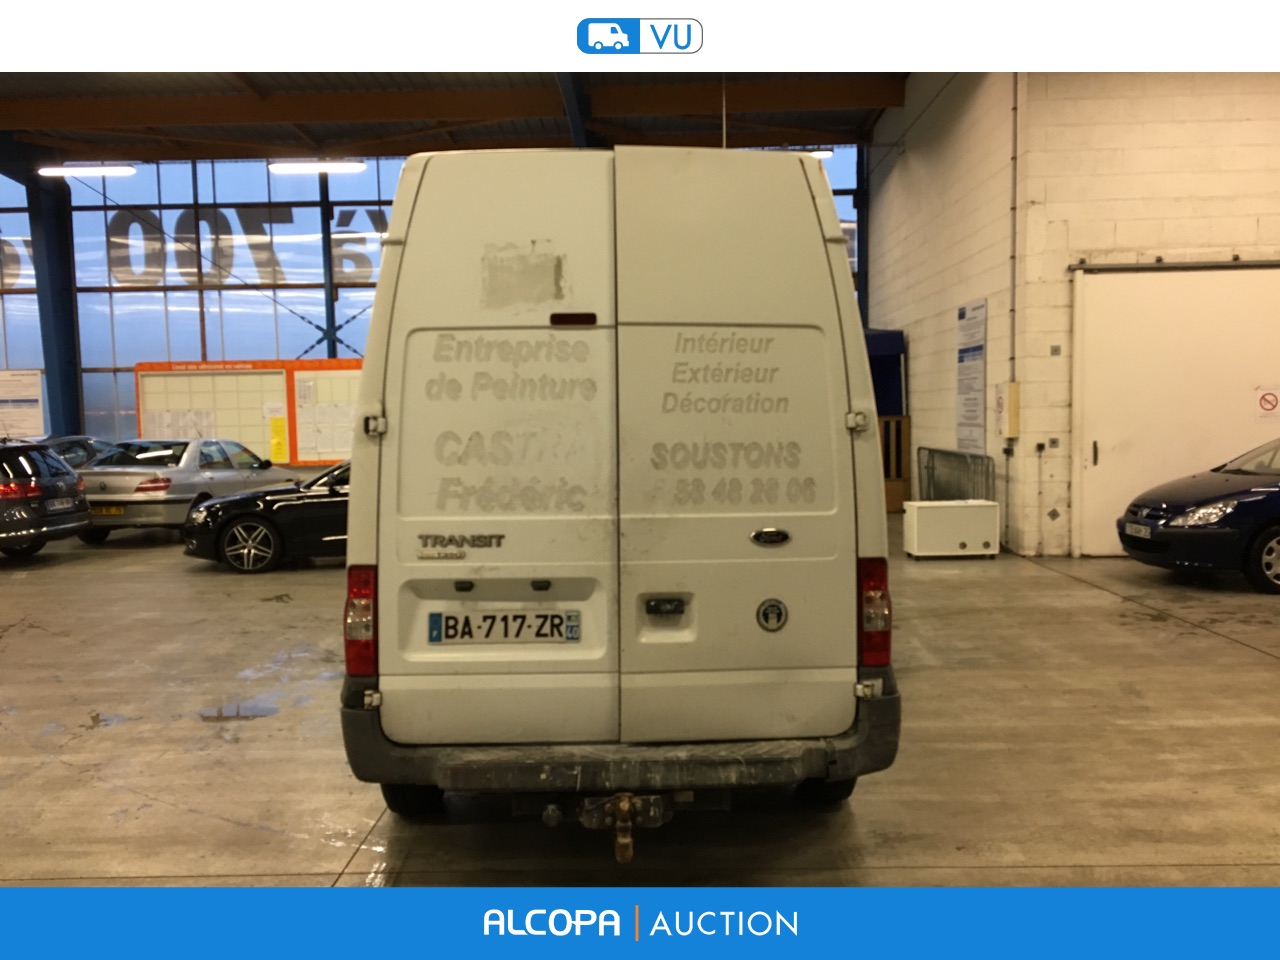 ford transit transit fg 350ms 2 2 tdci 110ch rennes alcopa auction. Black Bedroom Furniture Sets. Home Design Ideas